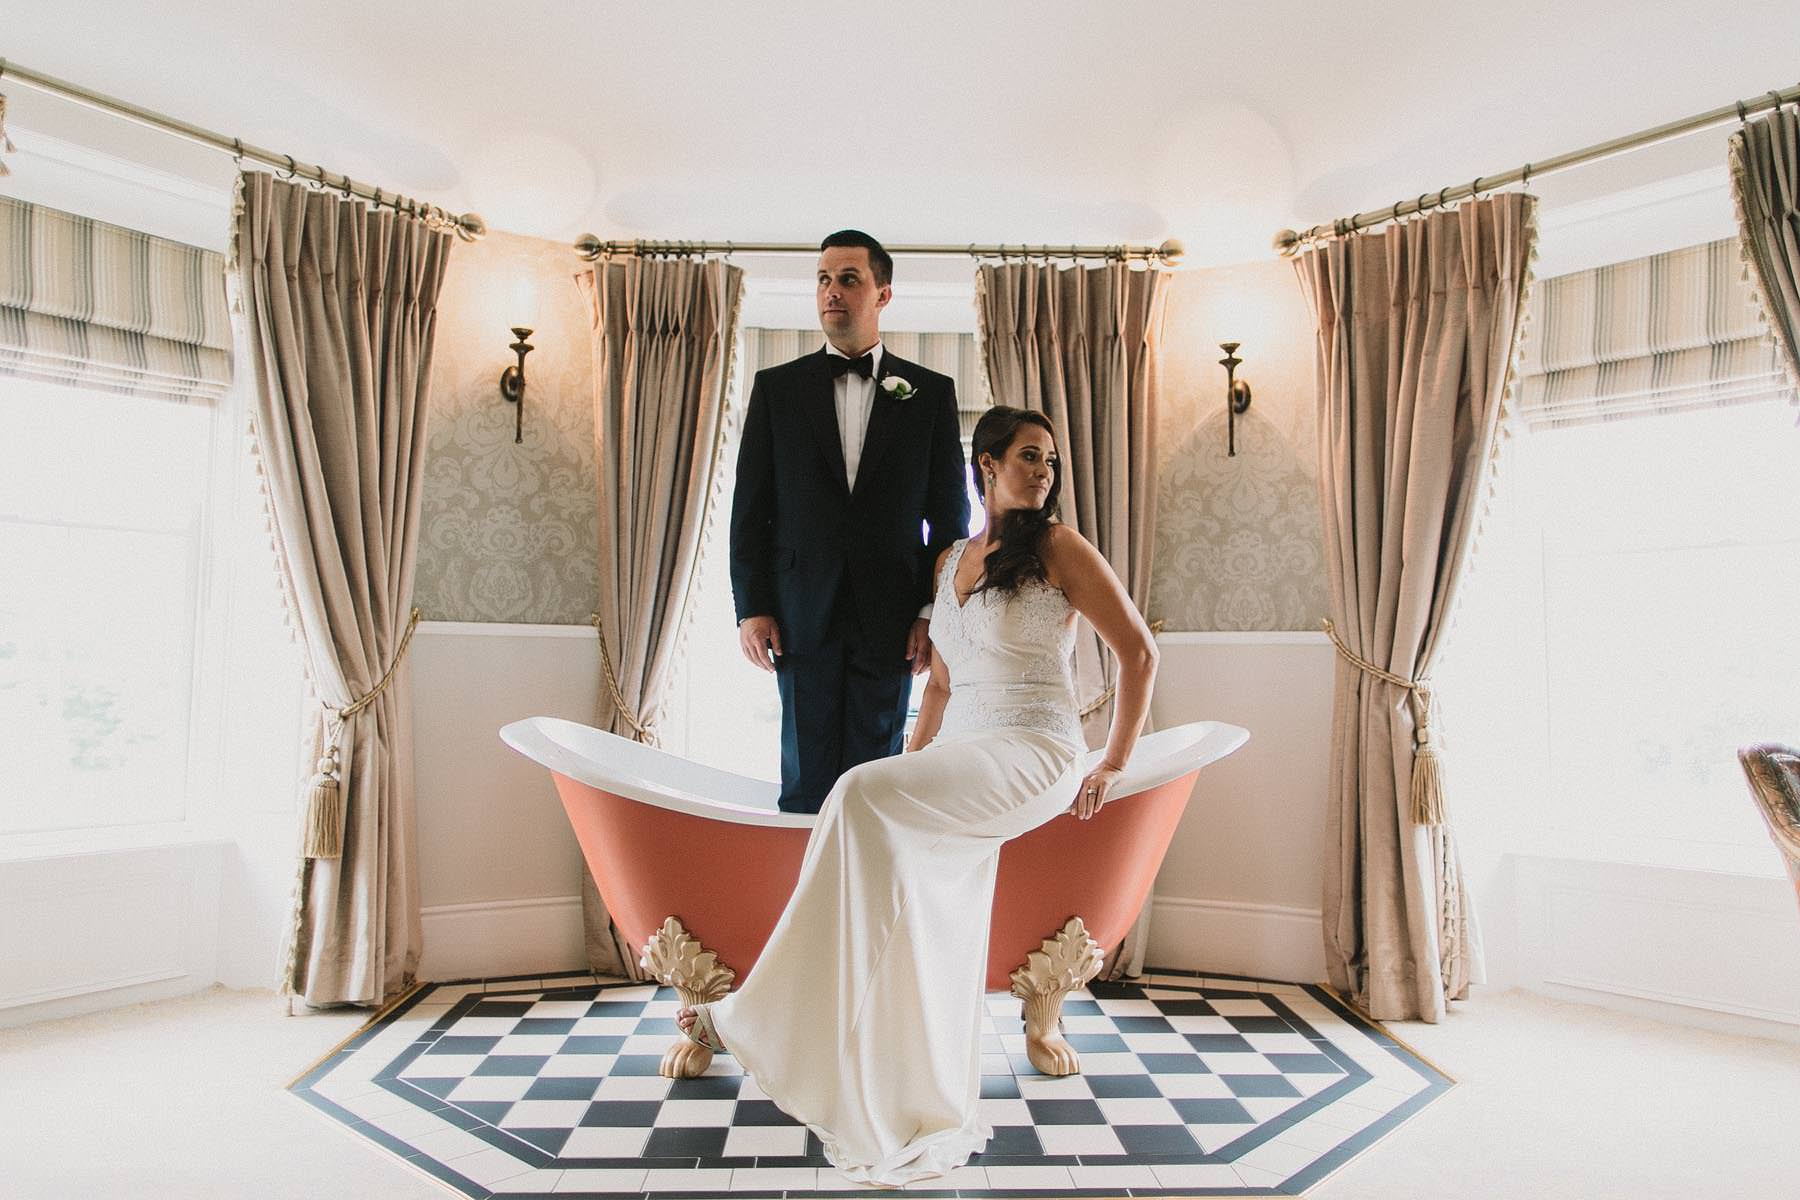 A Fun And Relaxed Wedding Day - tips 1